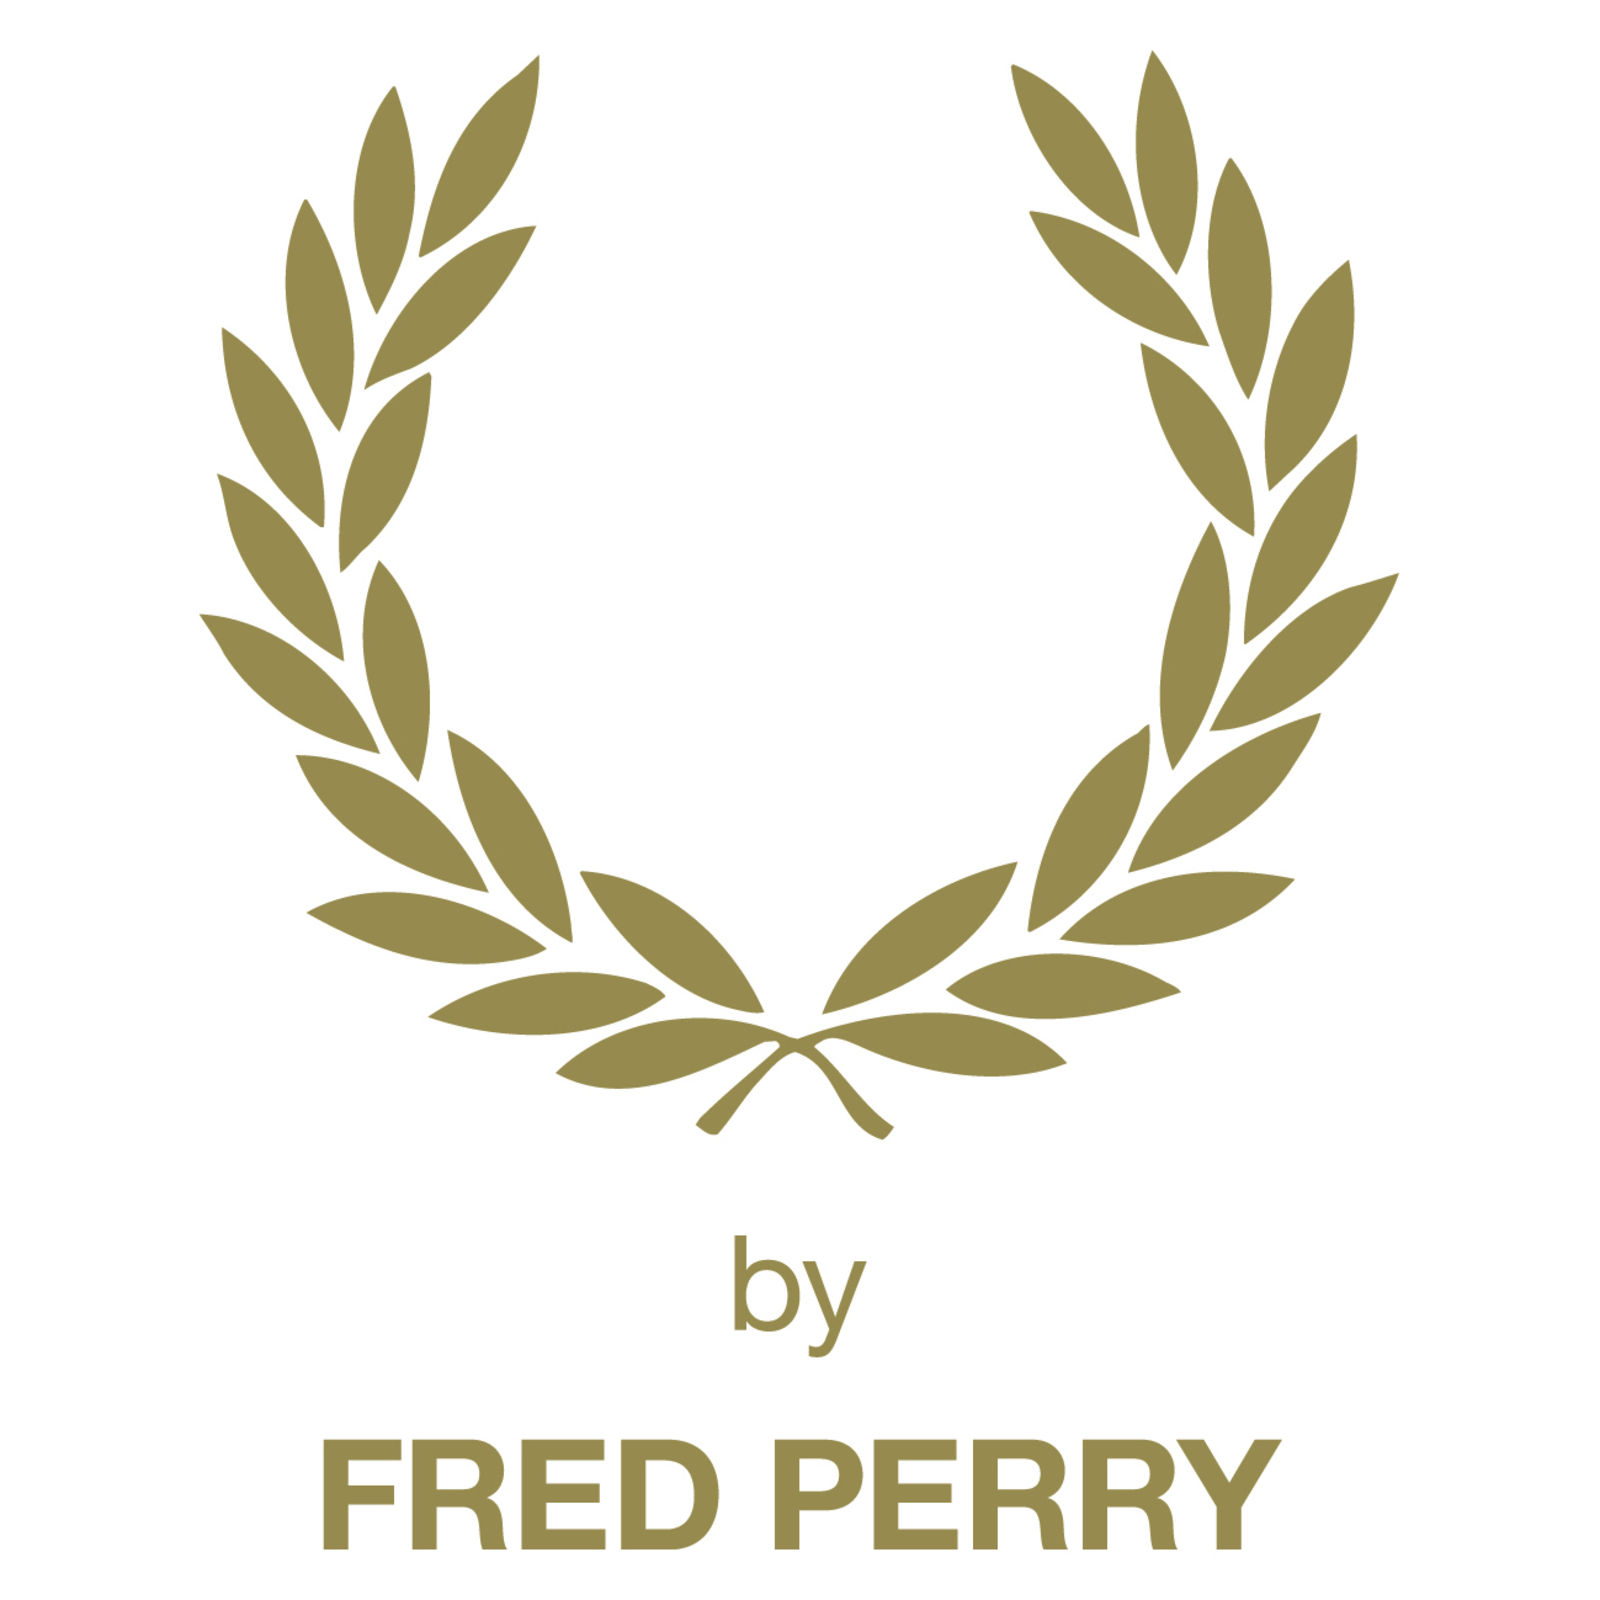 FRED PERRY Laurel Wreath | Re-Issues